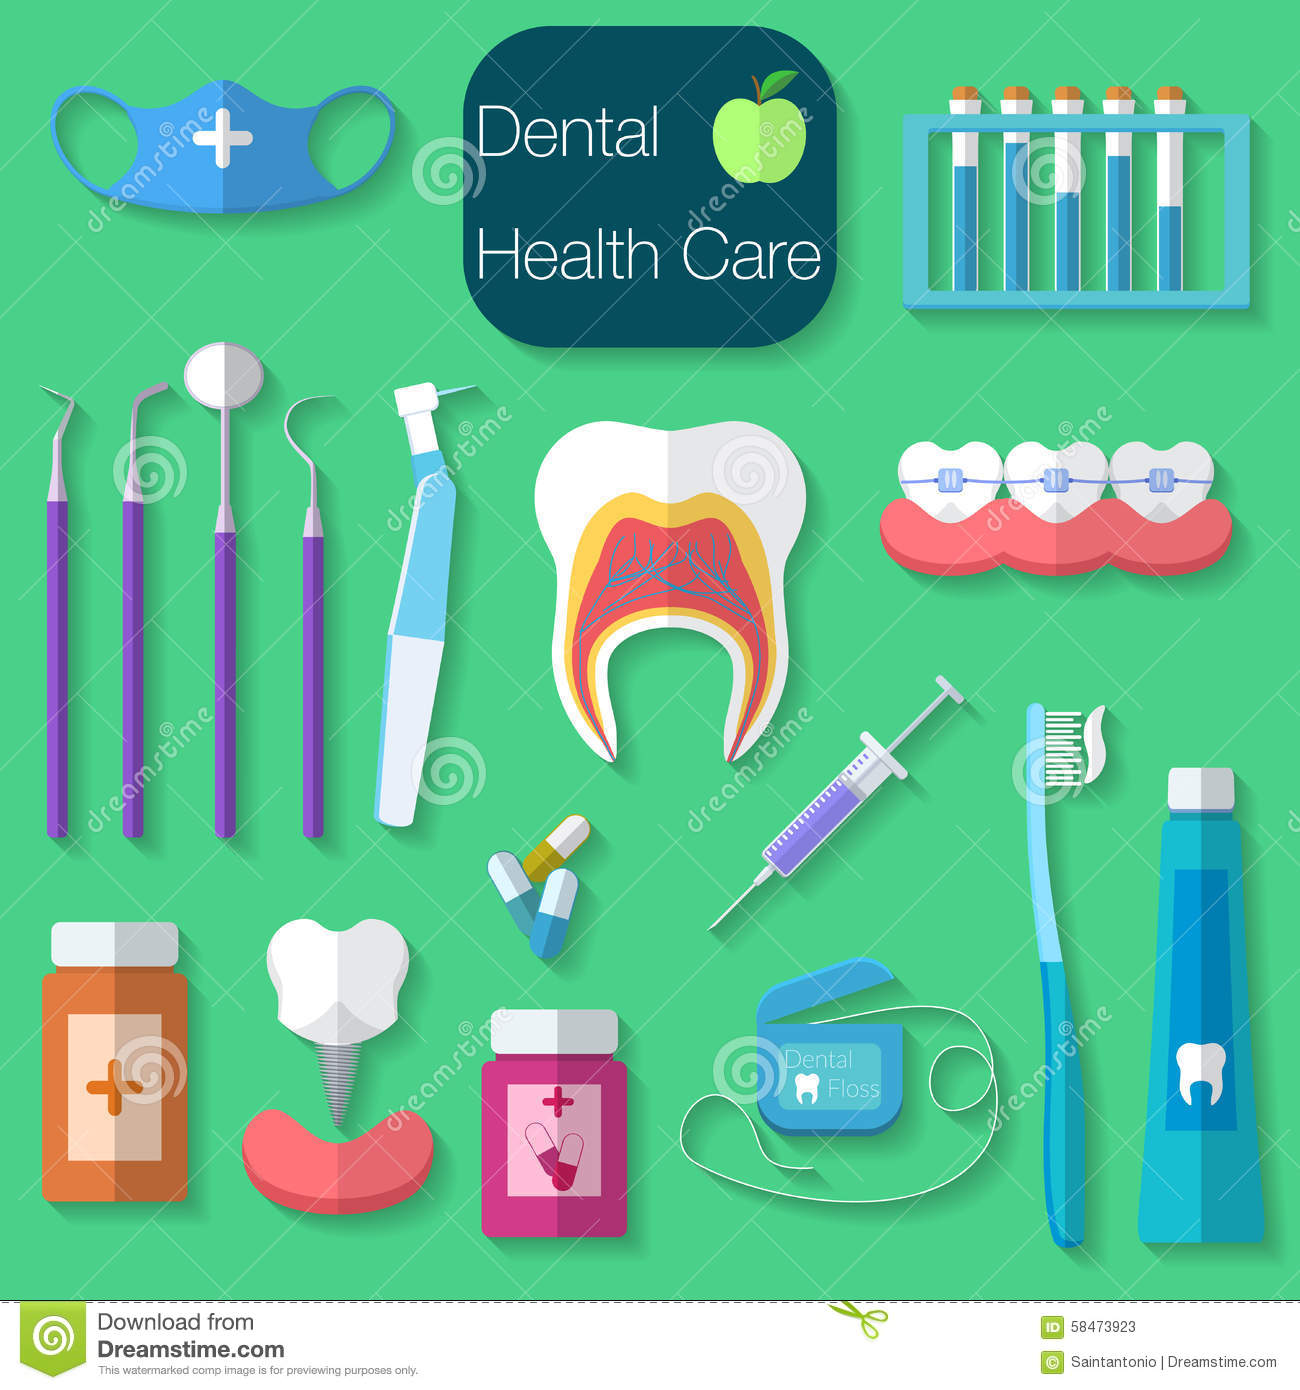 dental-care-flat-design-vector-illustration-dental-floss-teeth-mouth-tooth-paste-brush-medicine-syringe-dentist-58473923.jpg